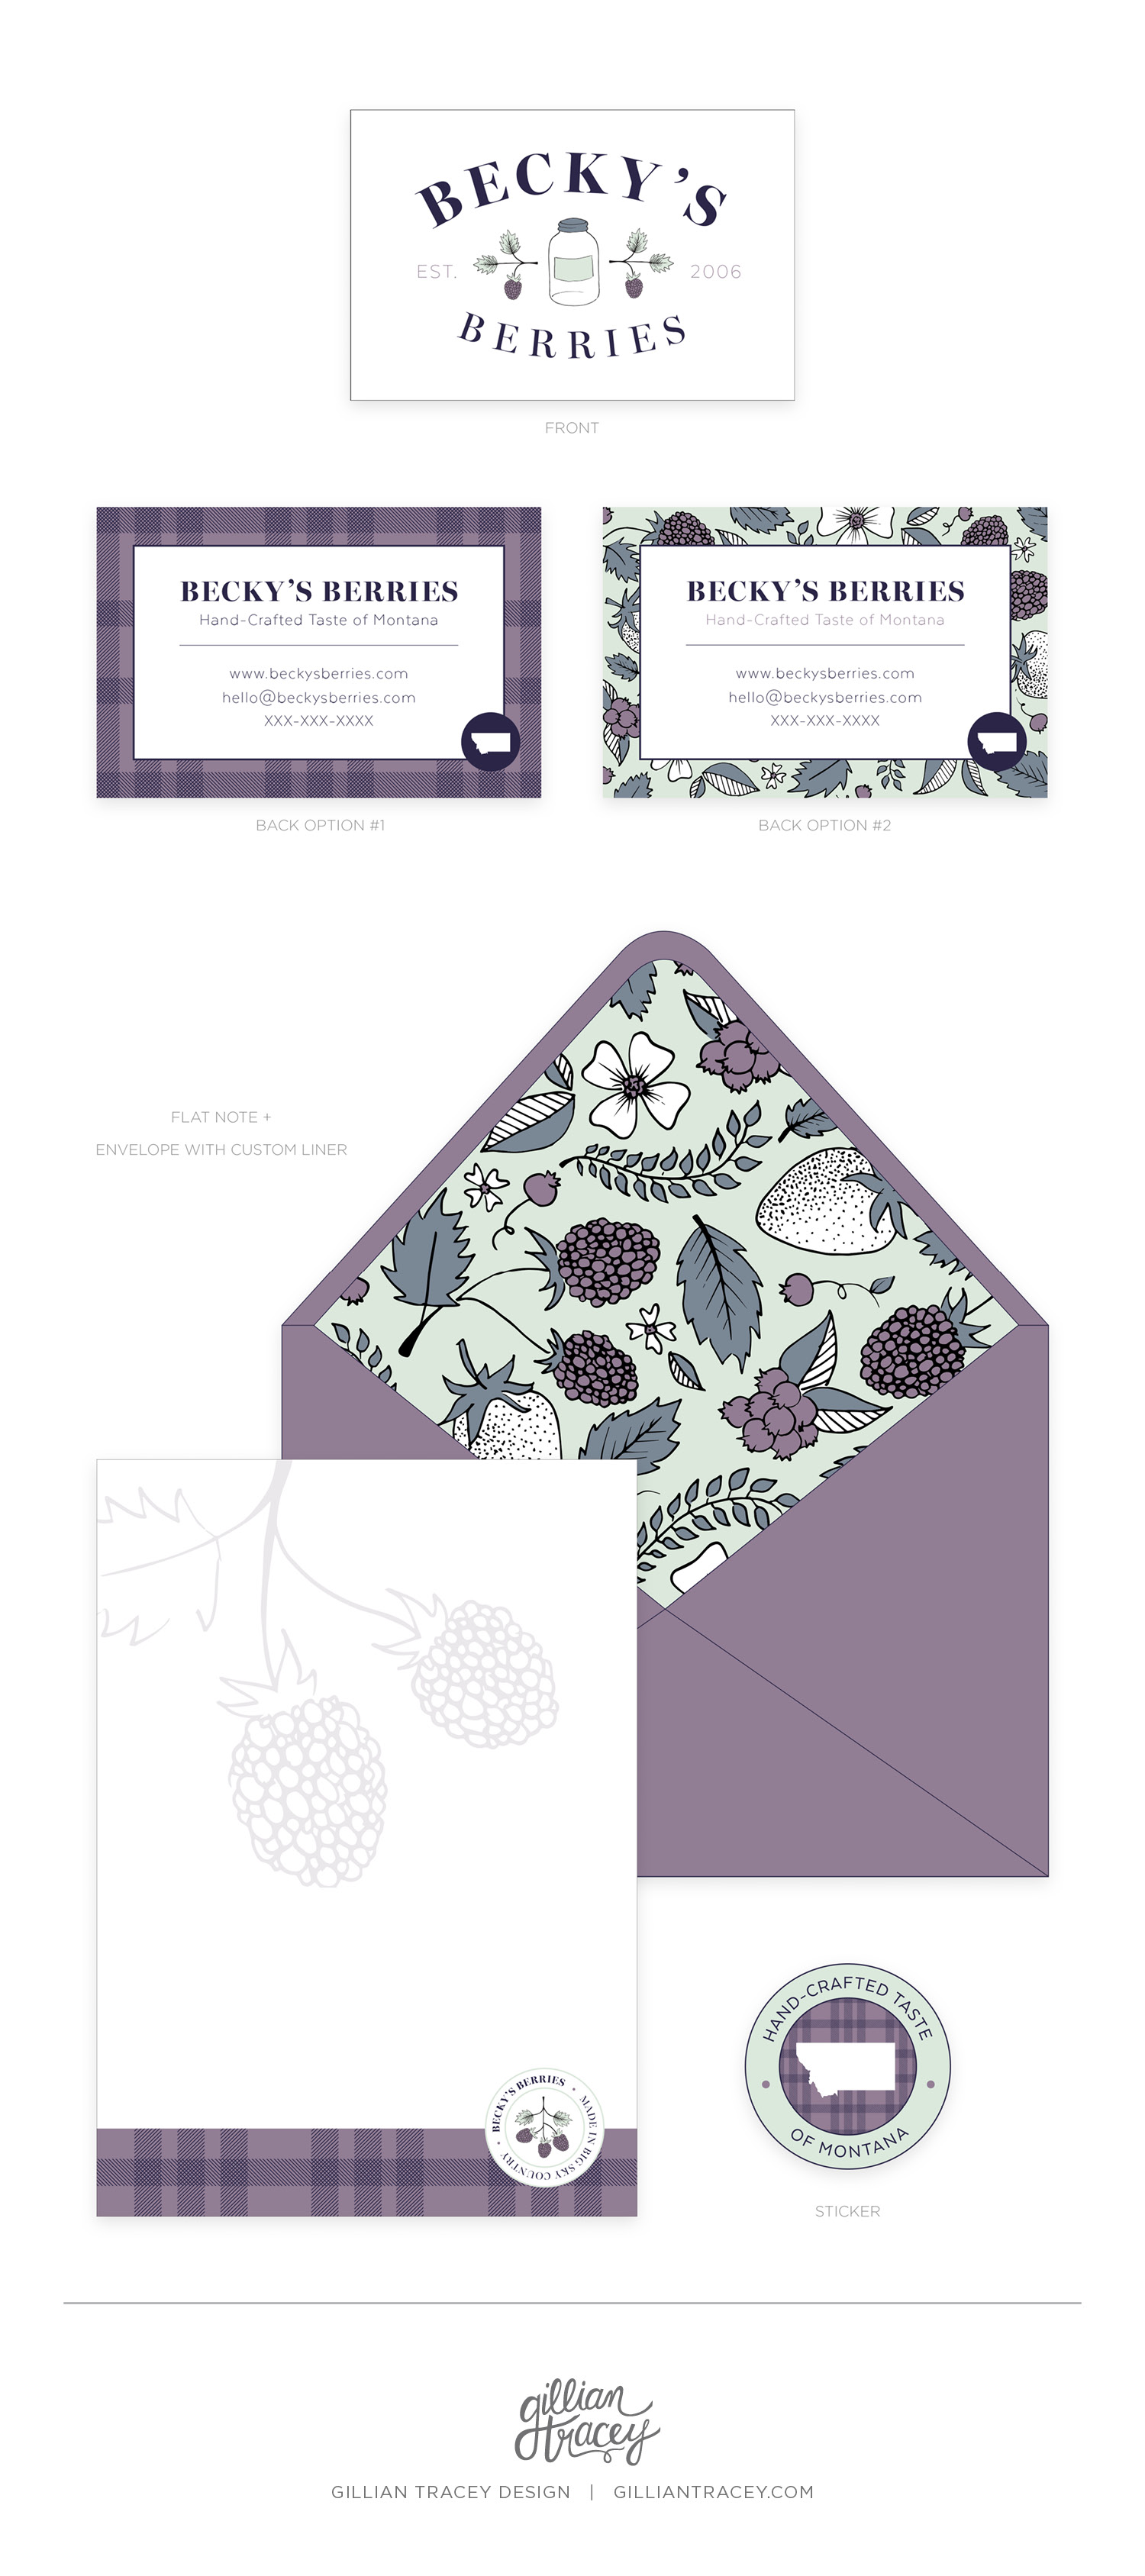 Becky's Berries Print Collateral Concepts by Gillian Tracey Design